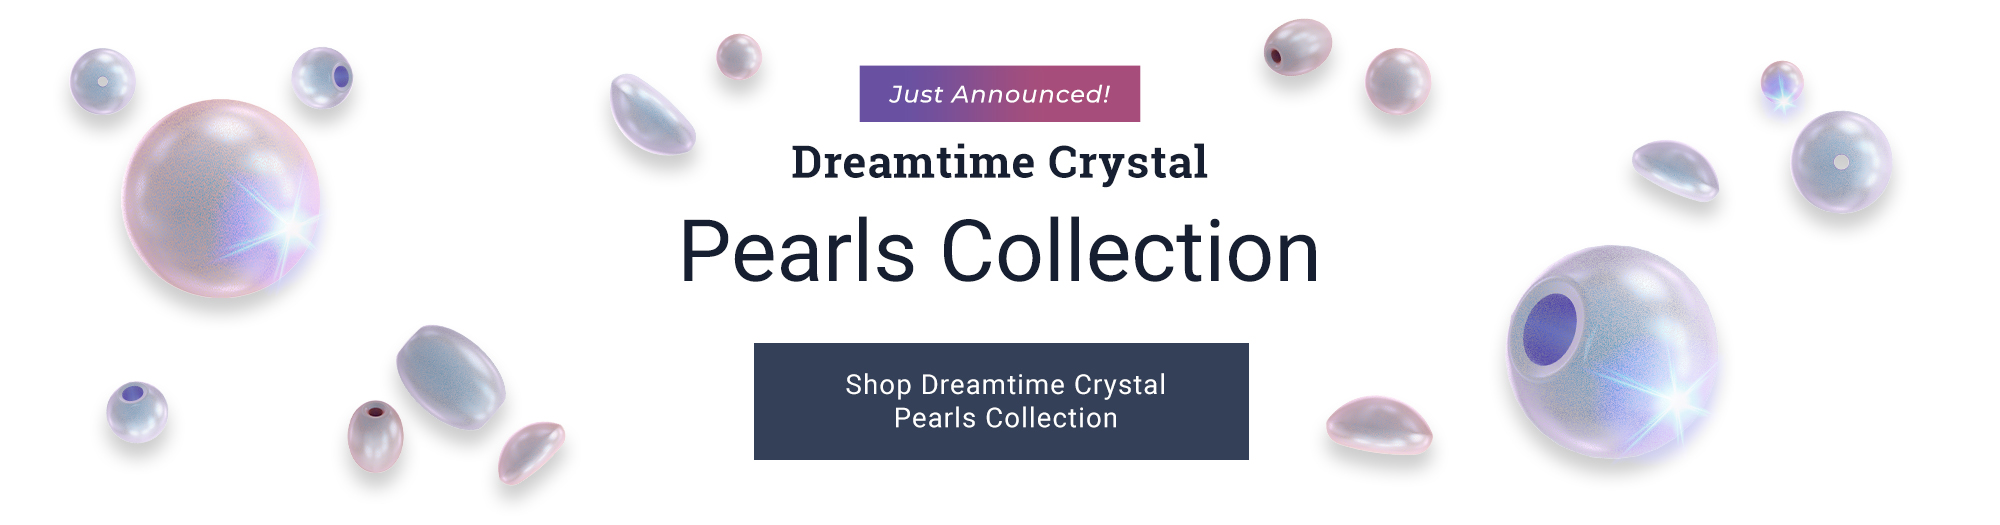 DC Pearls - 5000s launch